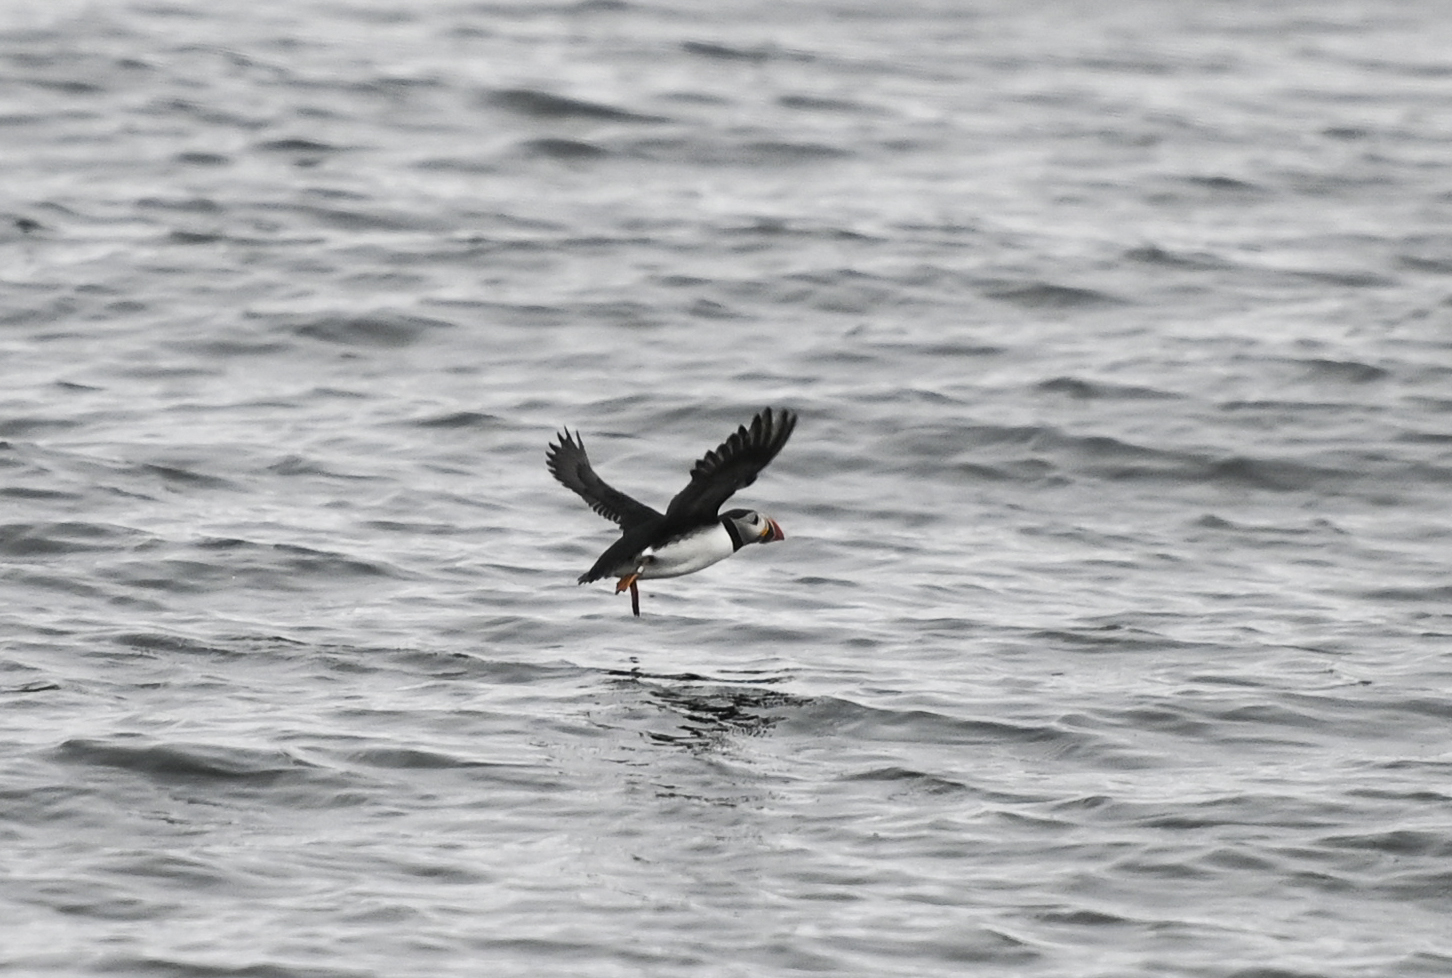 A Puffin flies near Eastern Egg Rock island, the world's first restored Atlantic Puffin colony, 6 miles east of 6 miles east of New Harbor, Maine on June 25, 2019. (Credit: ANDREW CABALLERO-REYNOLDS/AFP/Getty Images)